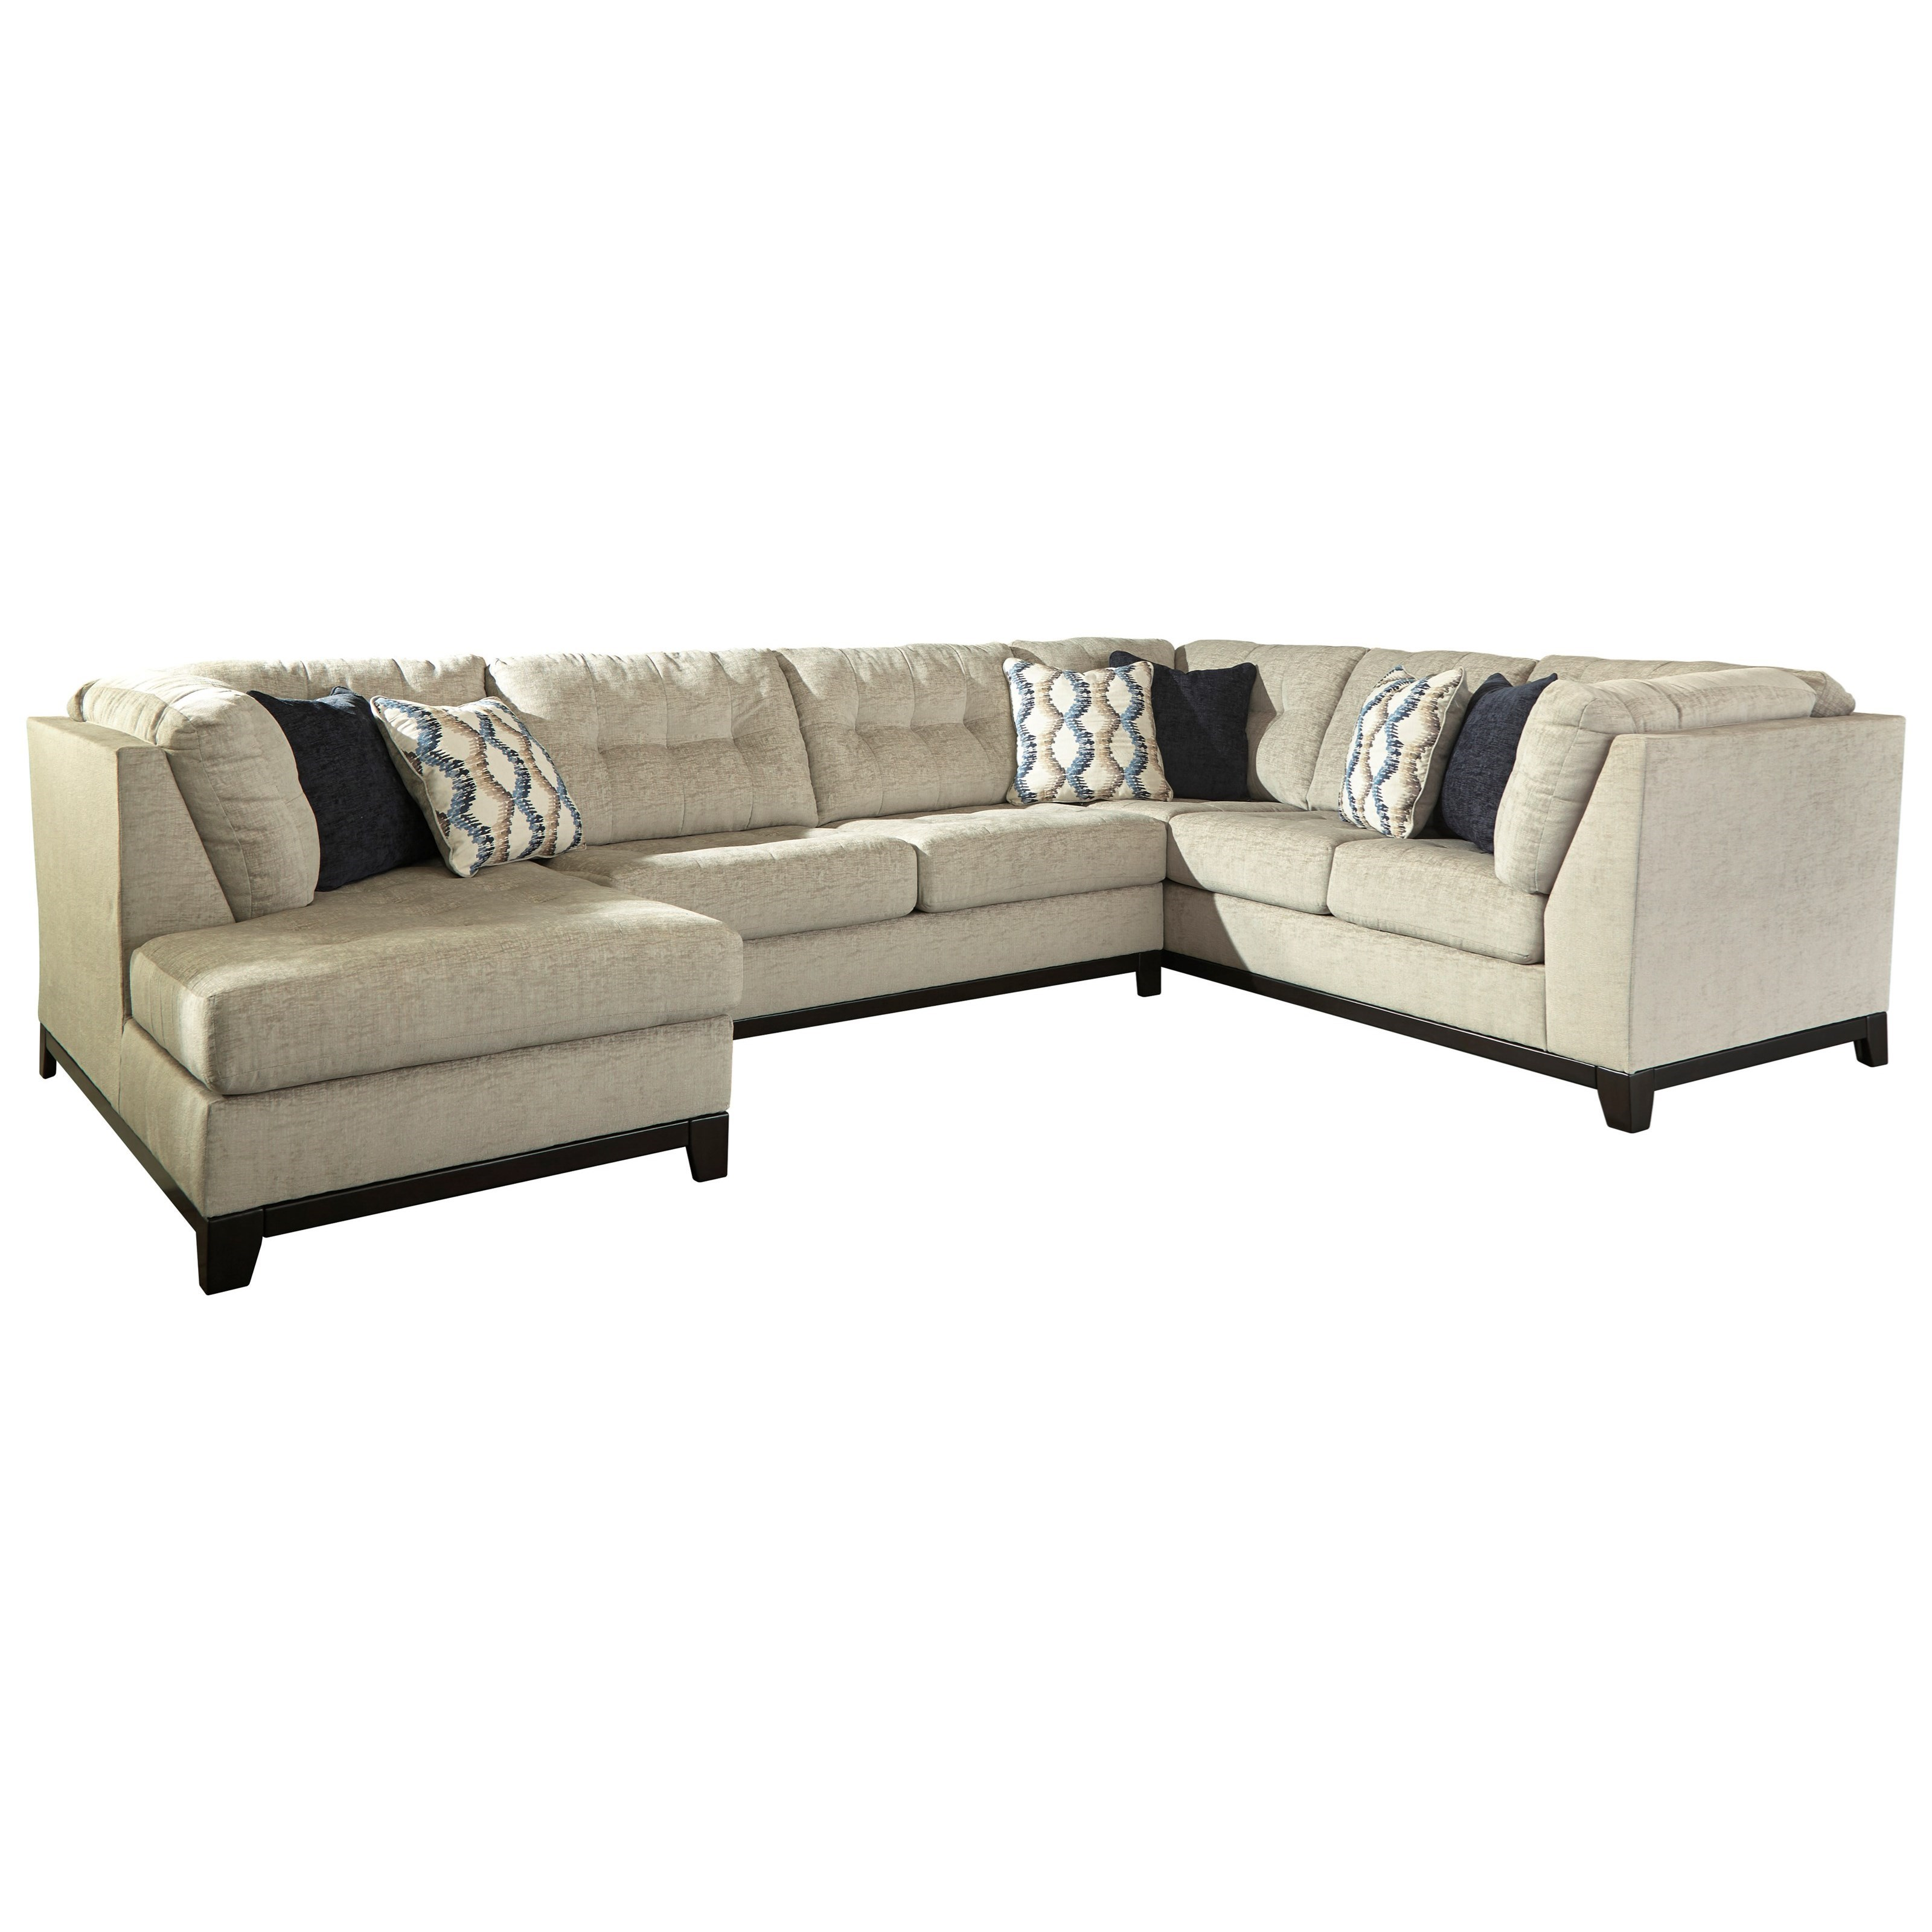 Benchcraft By Ashley Beckendorf 3 Piece Sectional With Left Chaise | Royal  Furniture | Sectional Sofas